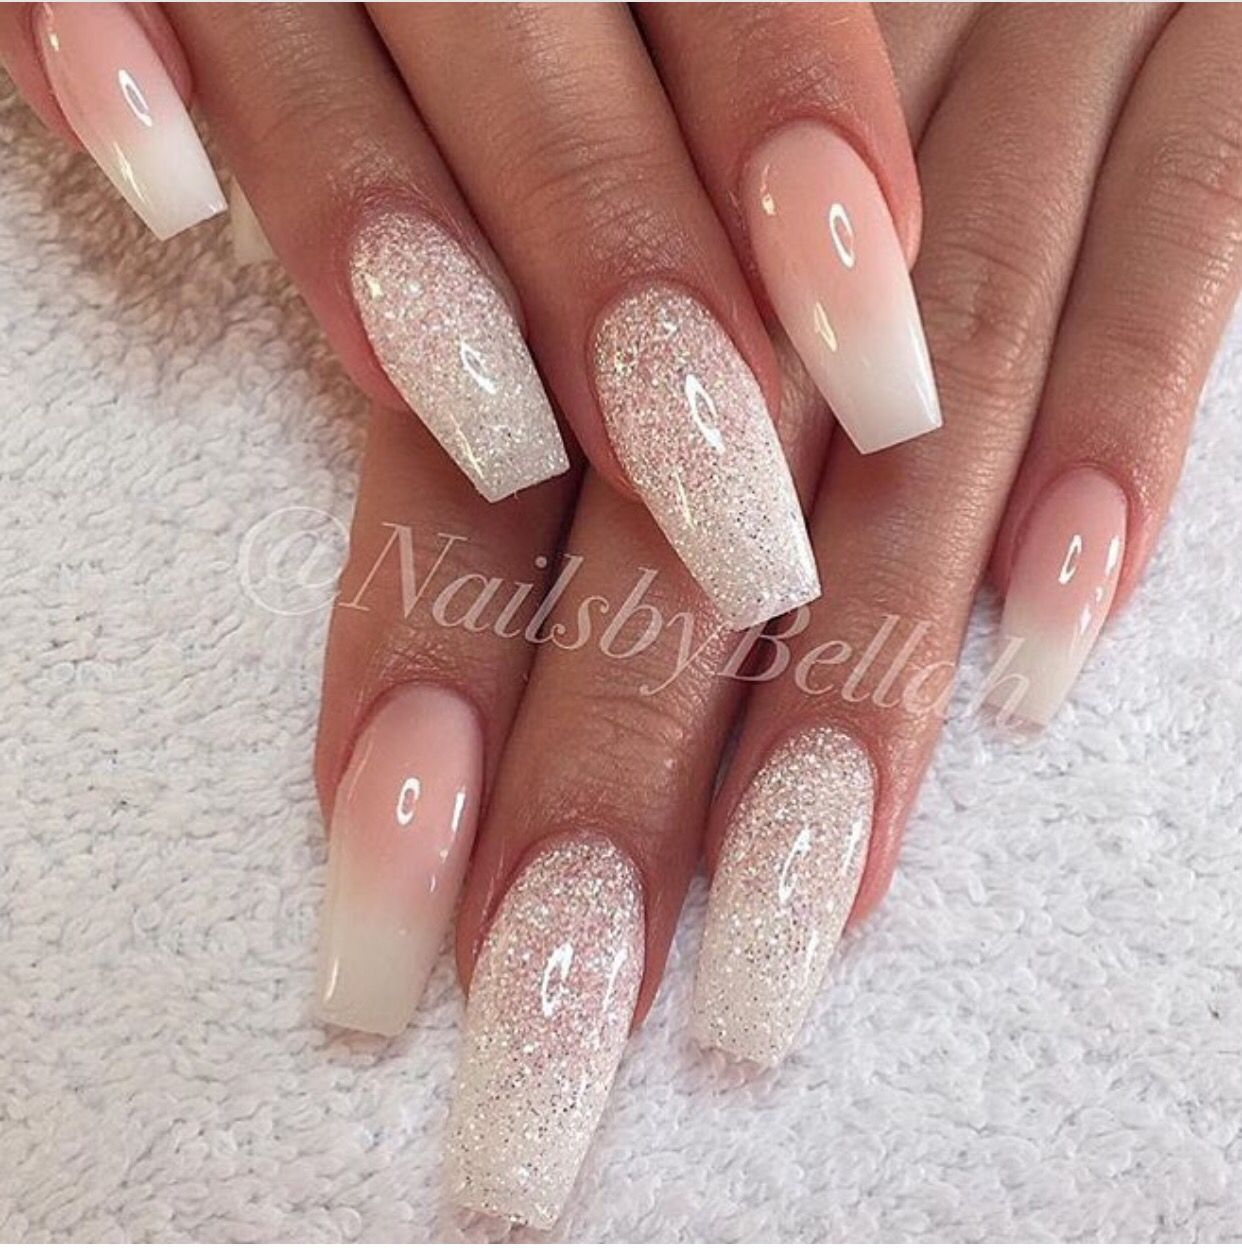 Sparkly Nail Designs U 241 As Para Novia U 241 As Ombr 233 U 241 As De Gel